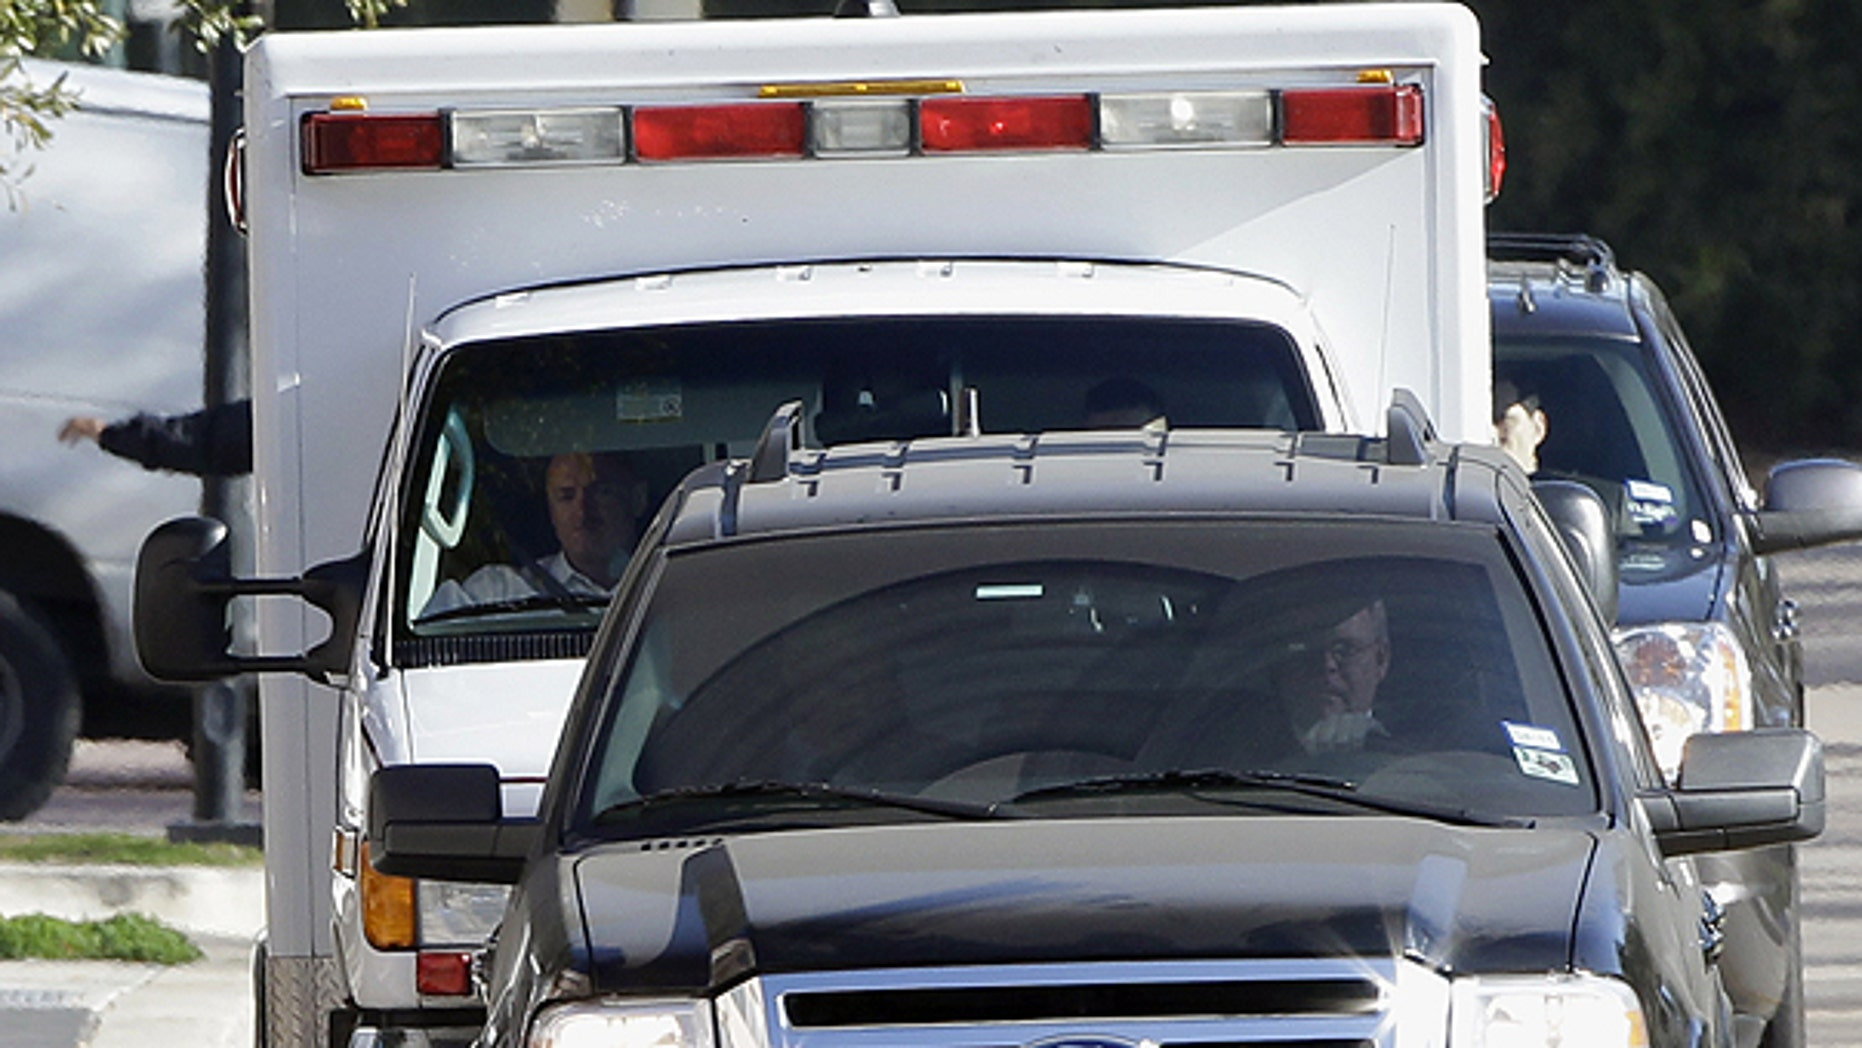 Jan. 26: Astronaut Mark Kelly sits in the passenger seat of the ambulance as it carries his wife, U.S. Rep. Gabrielle Giffords, to TIRR Memorial Hermann Rehabilitation Hospital.